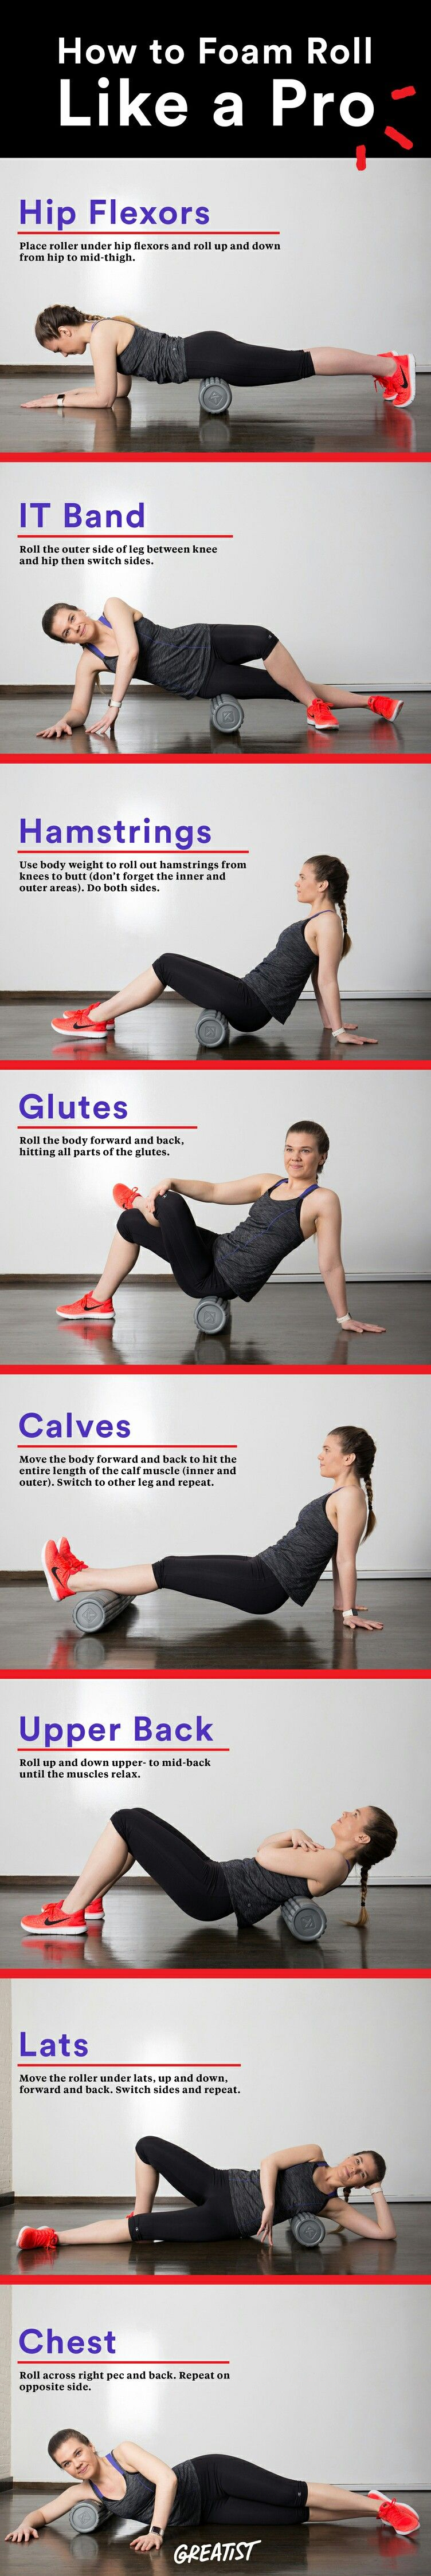 Foam roll massages for tight body areas (Psoas Strengthening Runners)